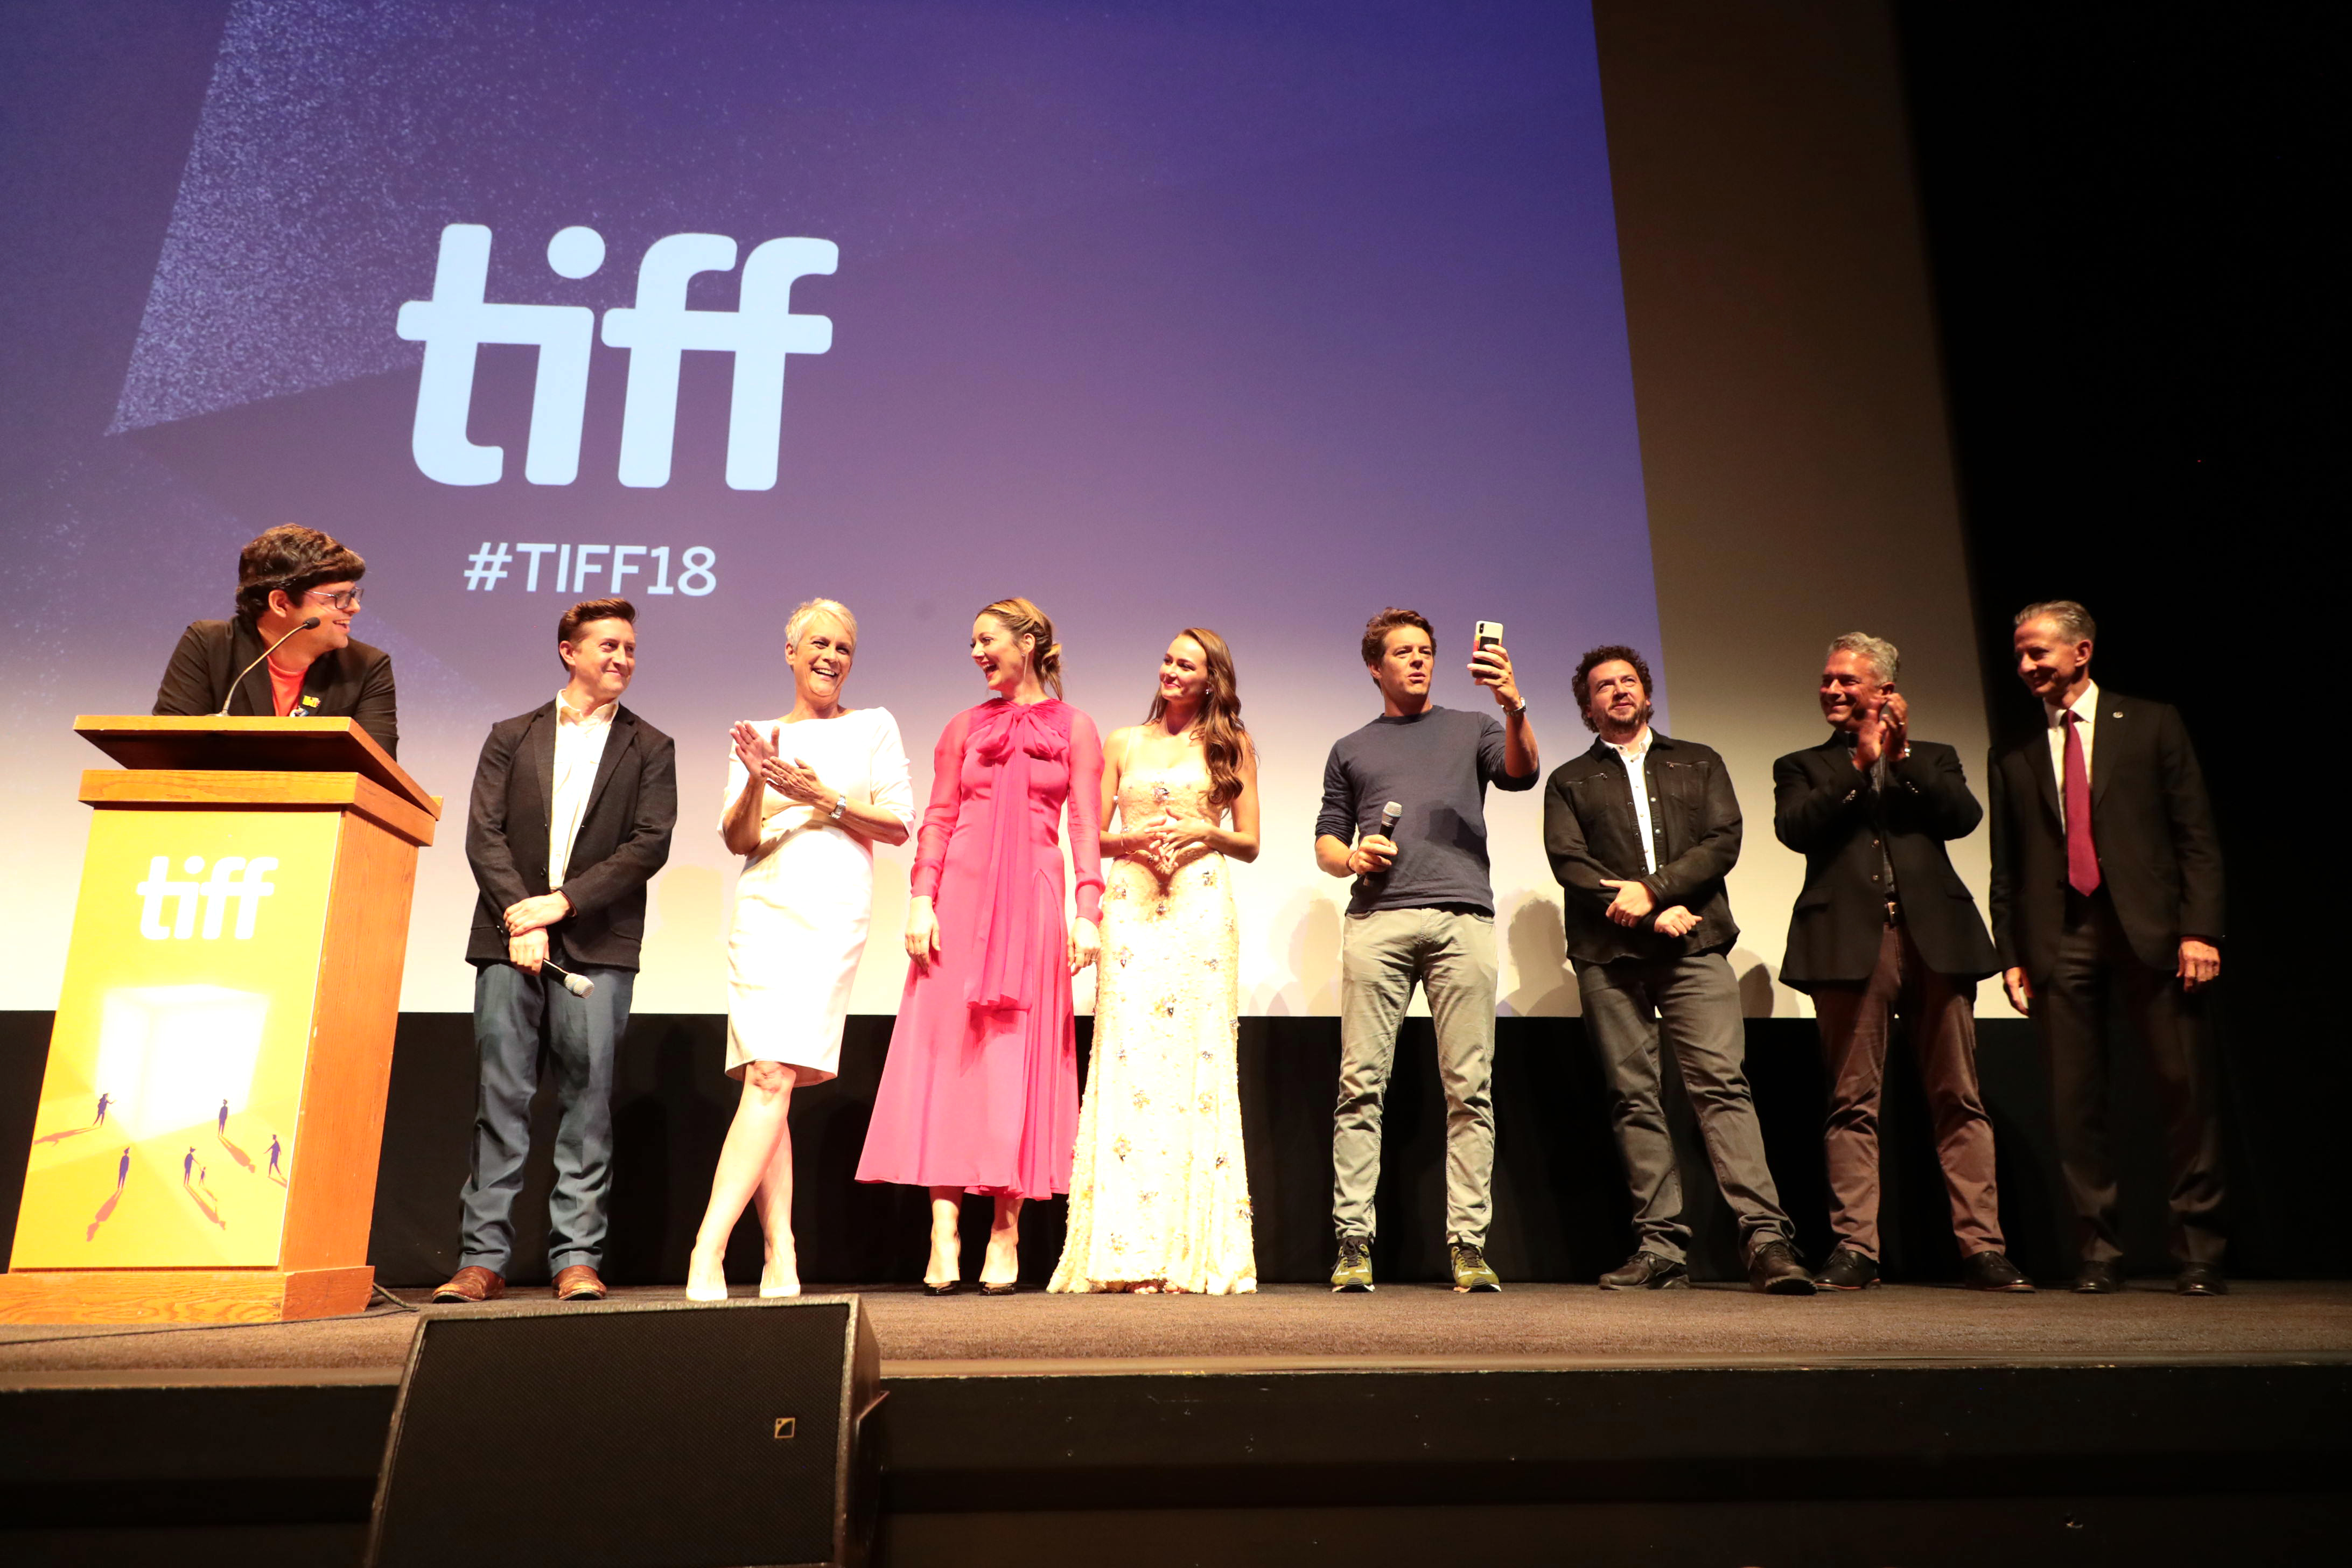 David Gordon Green, Writer/Director/Executive Producer, Jamie Lee Curtis, Executive Producer, Judy Greer, Andi Matichak, Jason Blum, Producer, Danny McBride, Writer/Executive Producer, Malek Akkad, ProducerUniversal Pictures' HALLOWEEN Premiere at the Toronto International Film Festival, Toronto, Canada - 8 Sep 2018